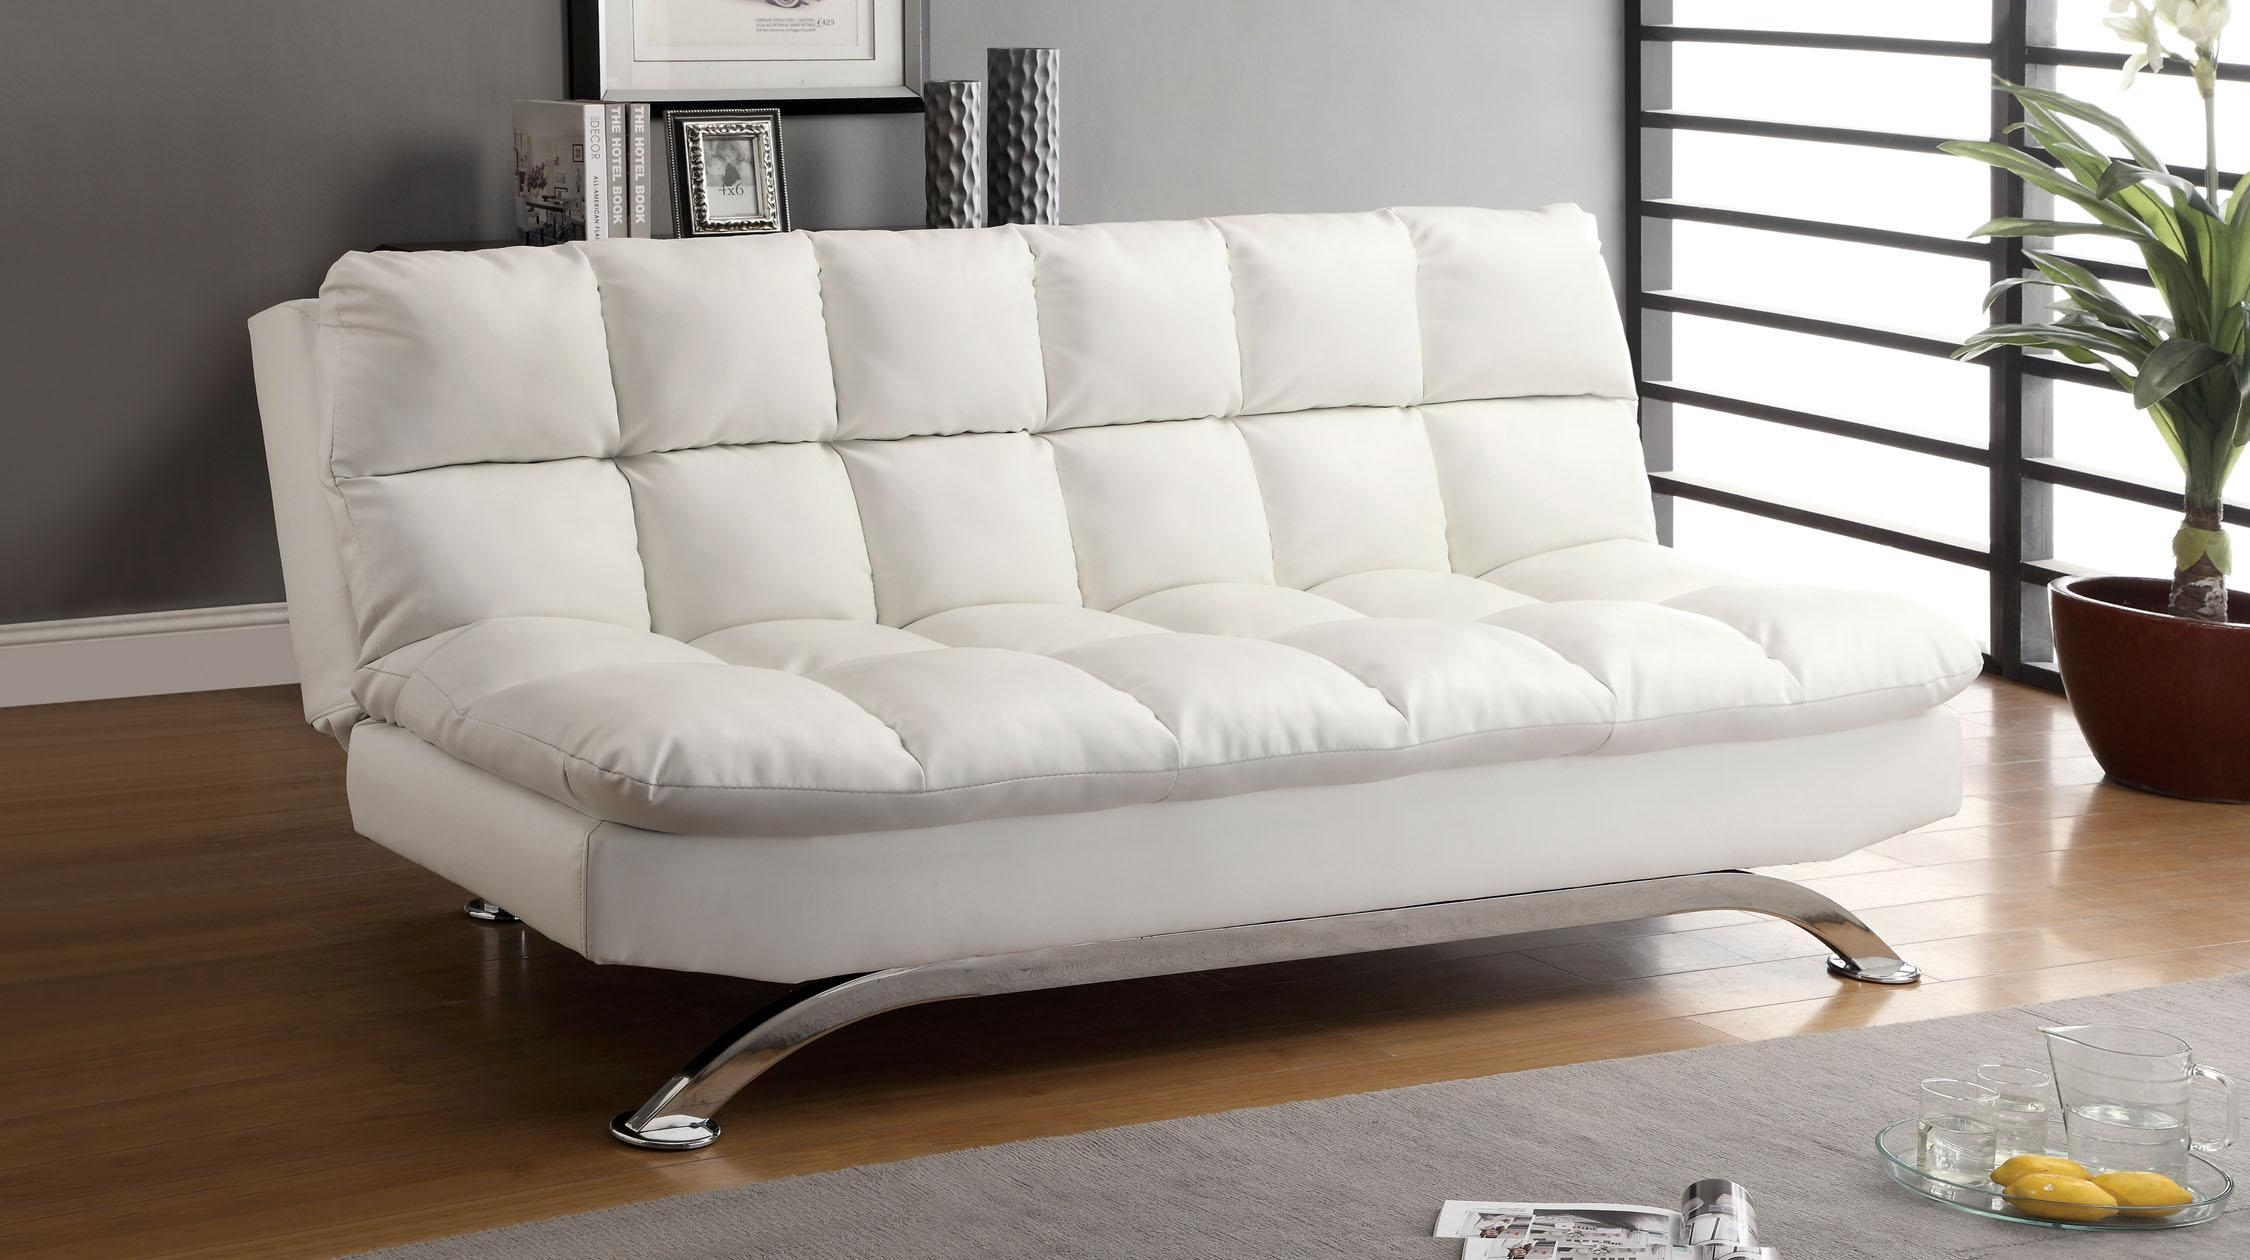 Convertible Sofa Futon | Tehranmix Decoration For Convertible Sofa Chair Bed (Image 12 of 20)